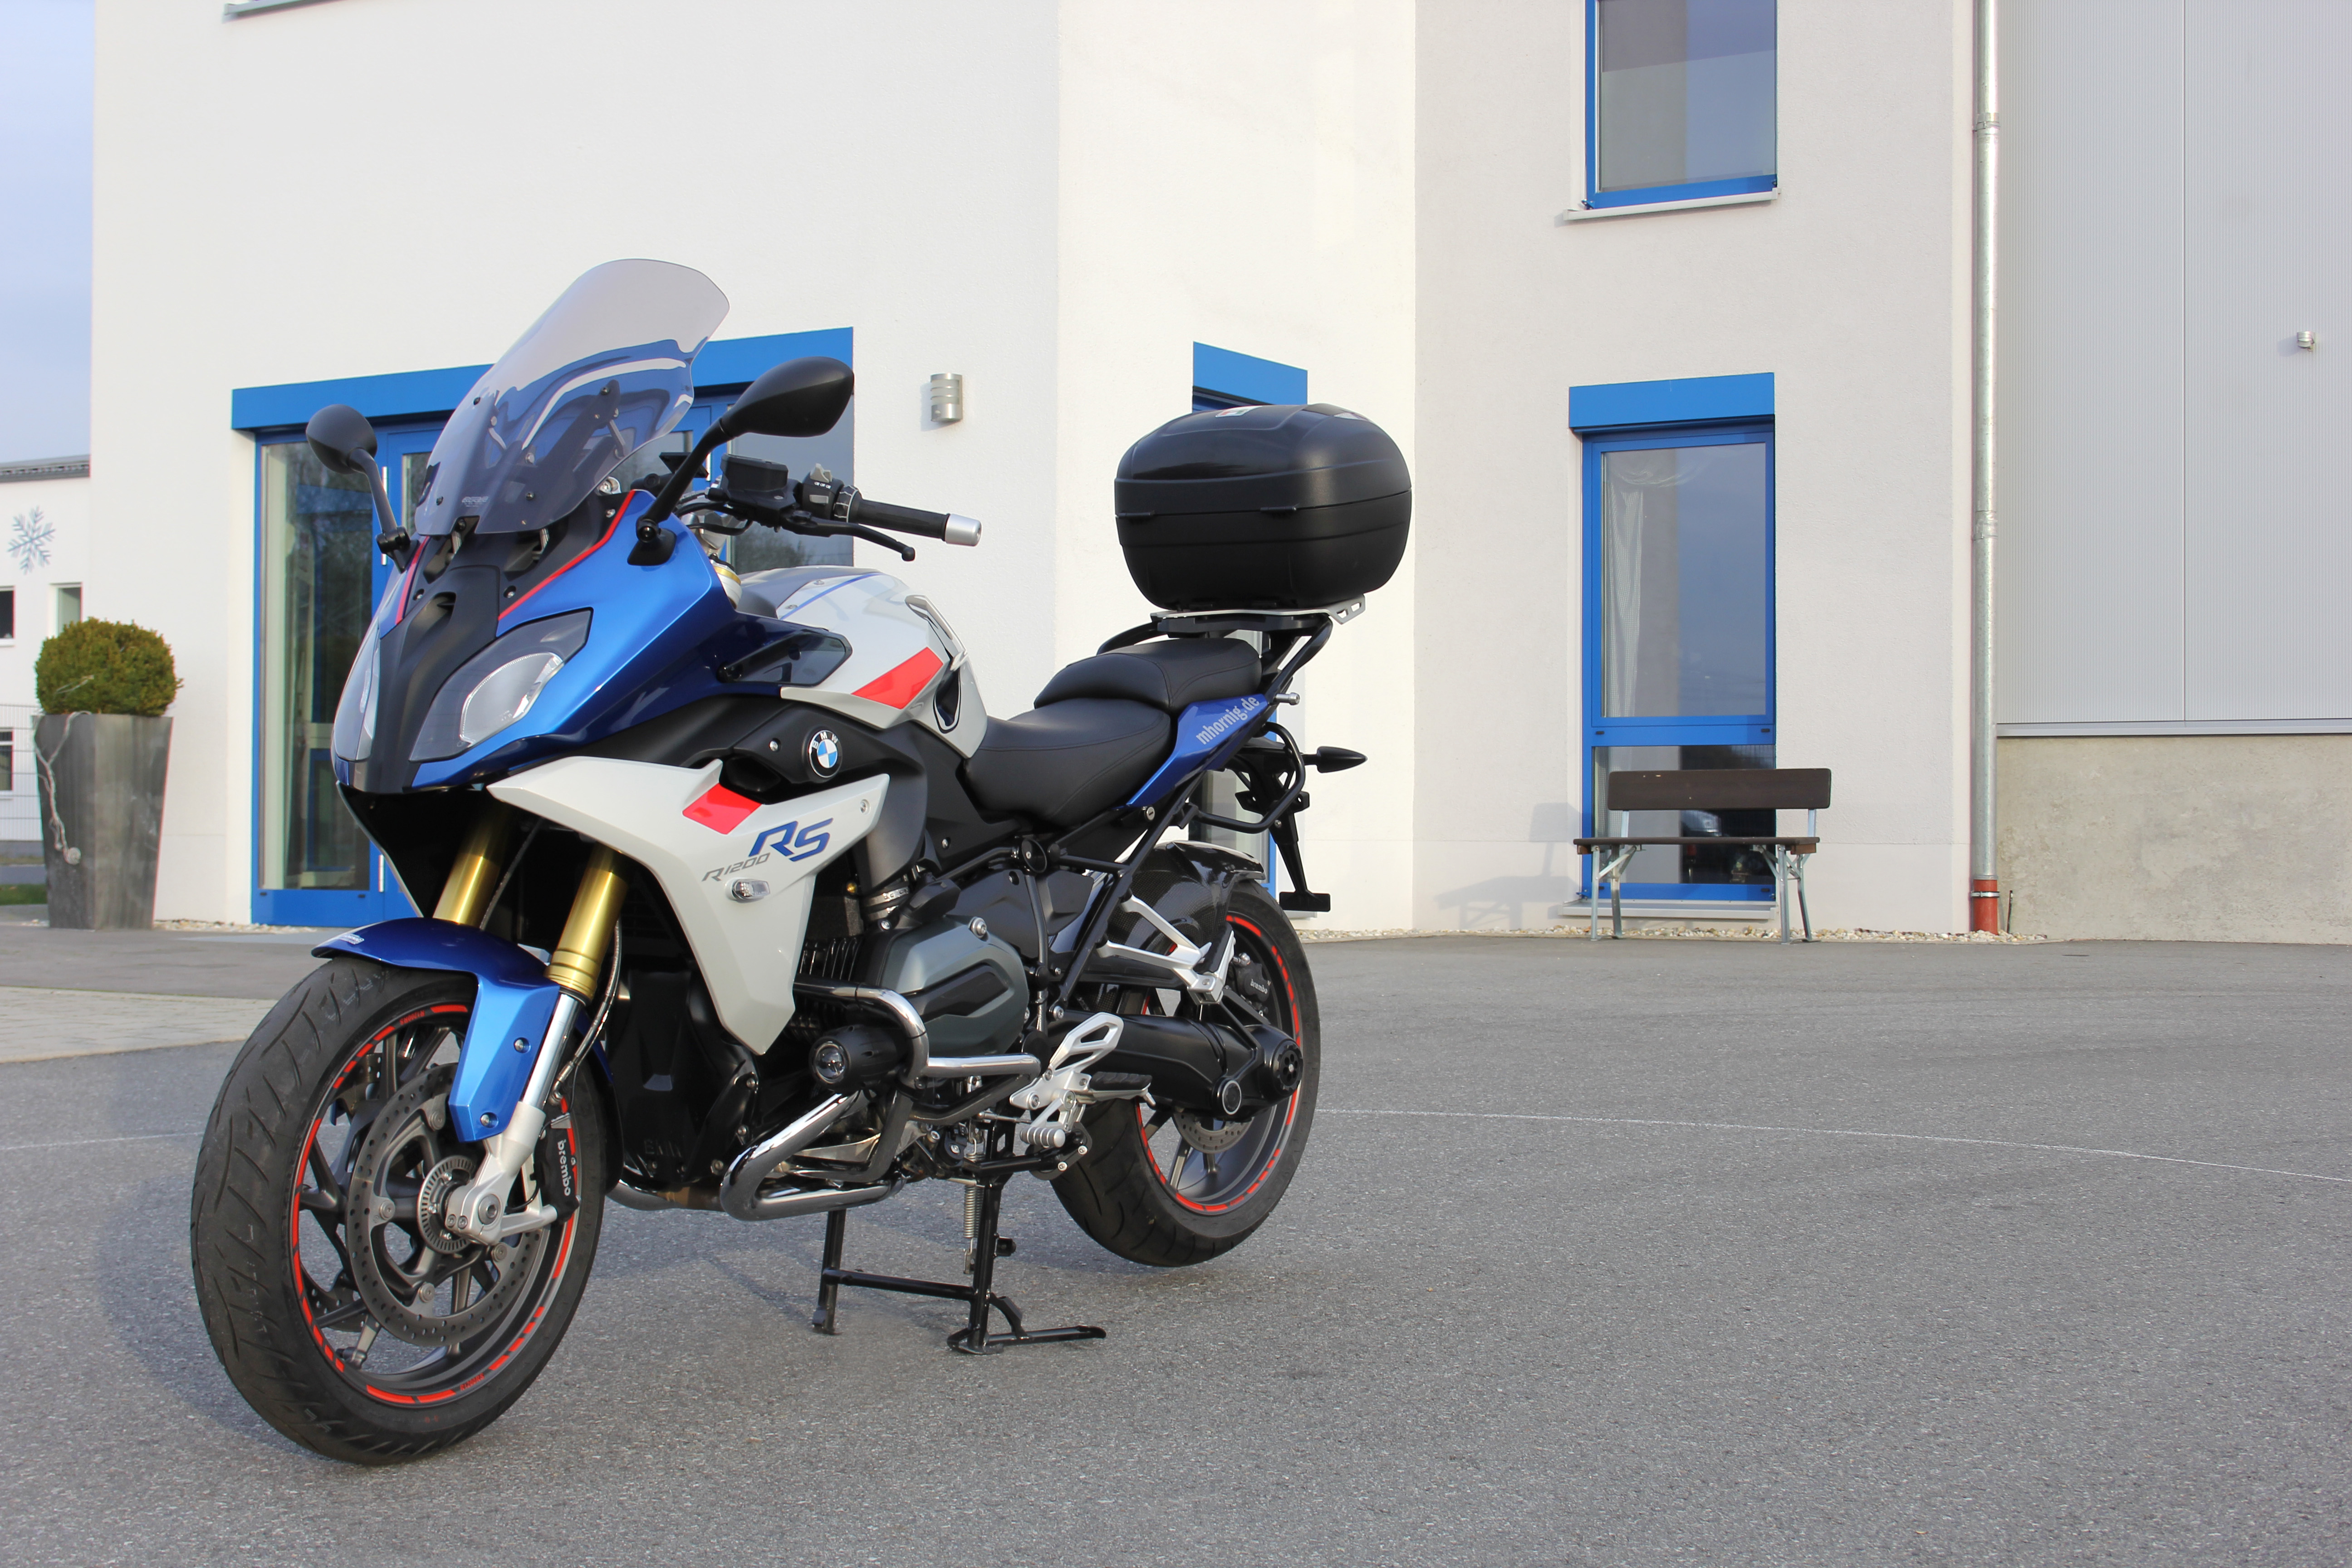 Bmw R1200rs Conversion By Hornig With More Comfort And Individuality